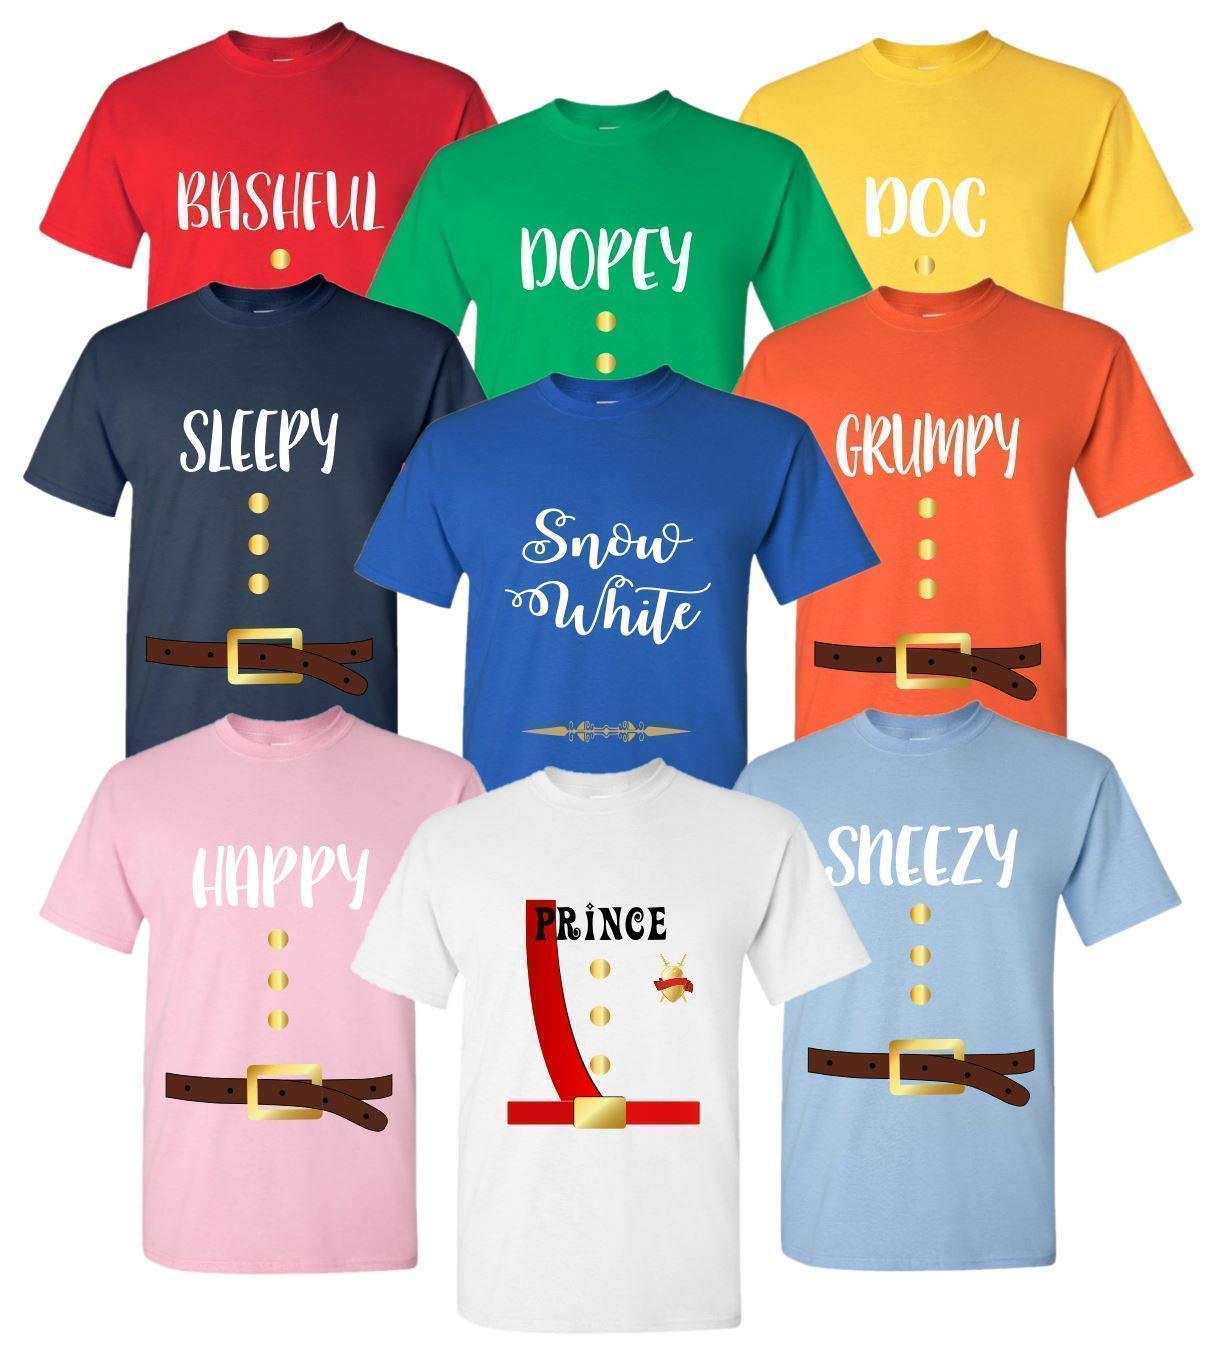 family costumes Silhouette Cosplay shirts SVG disney Costume group Disney Costume SVG 7 dwarfs t-shirt svg Matching tees Cricut SVG